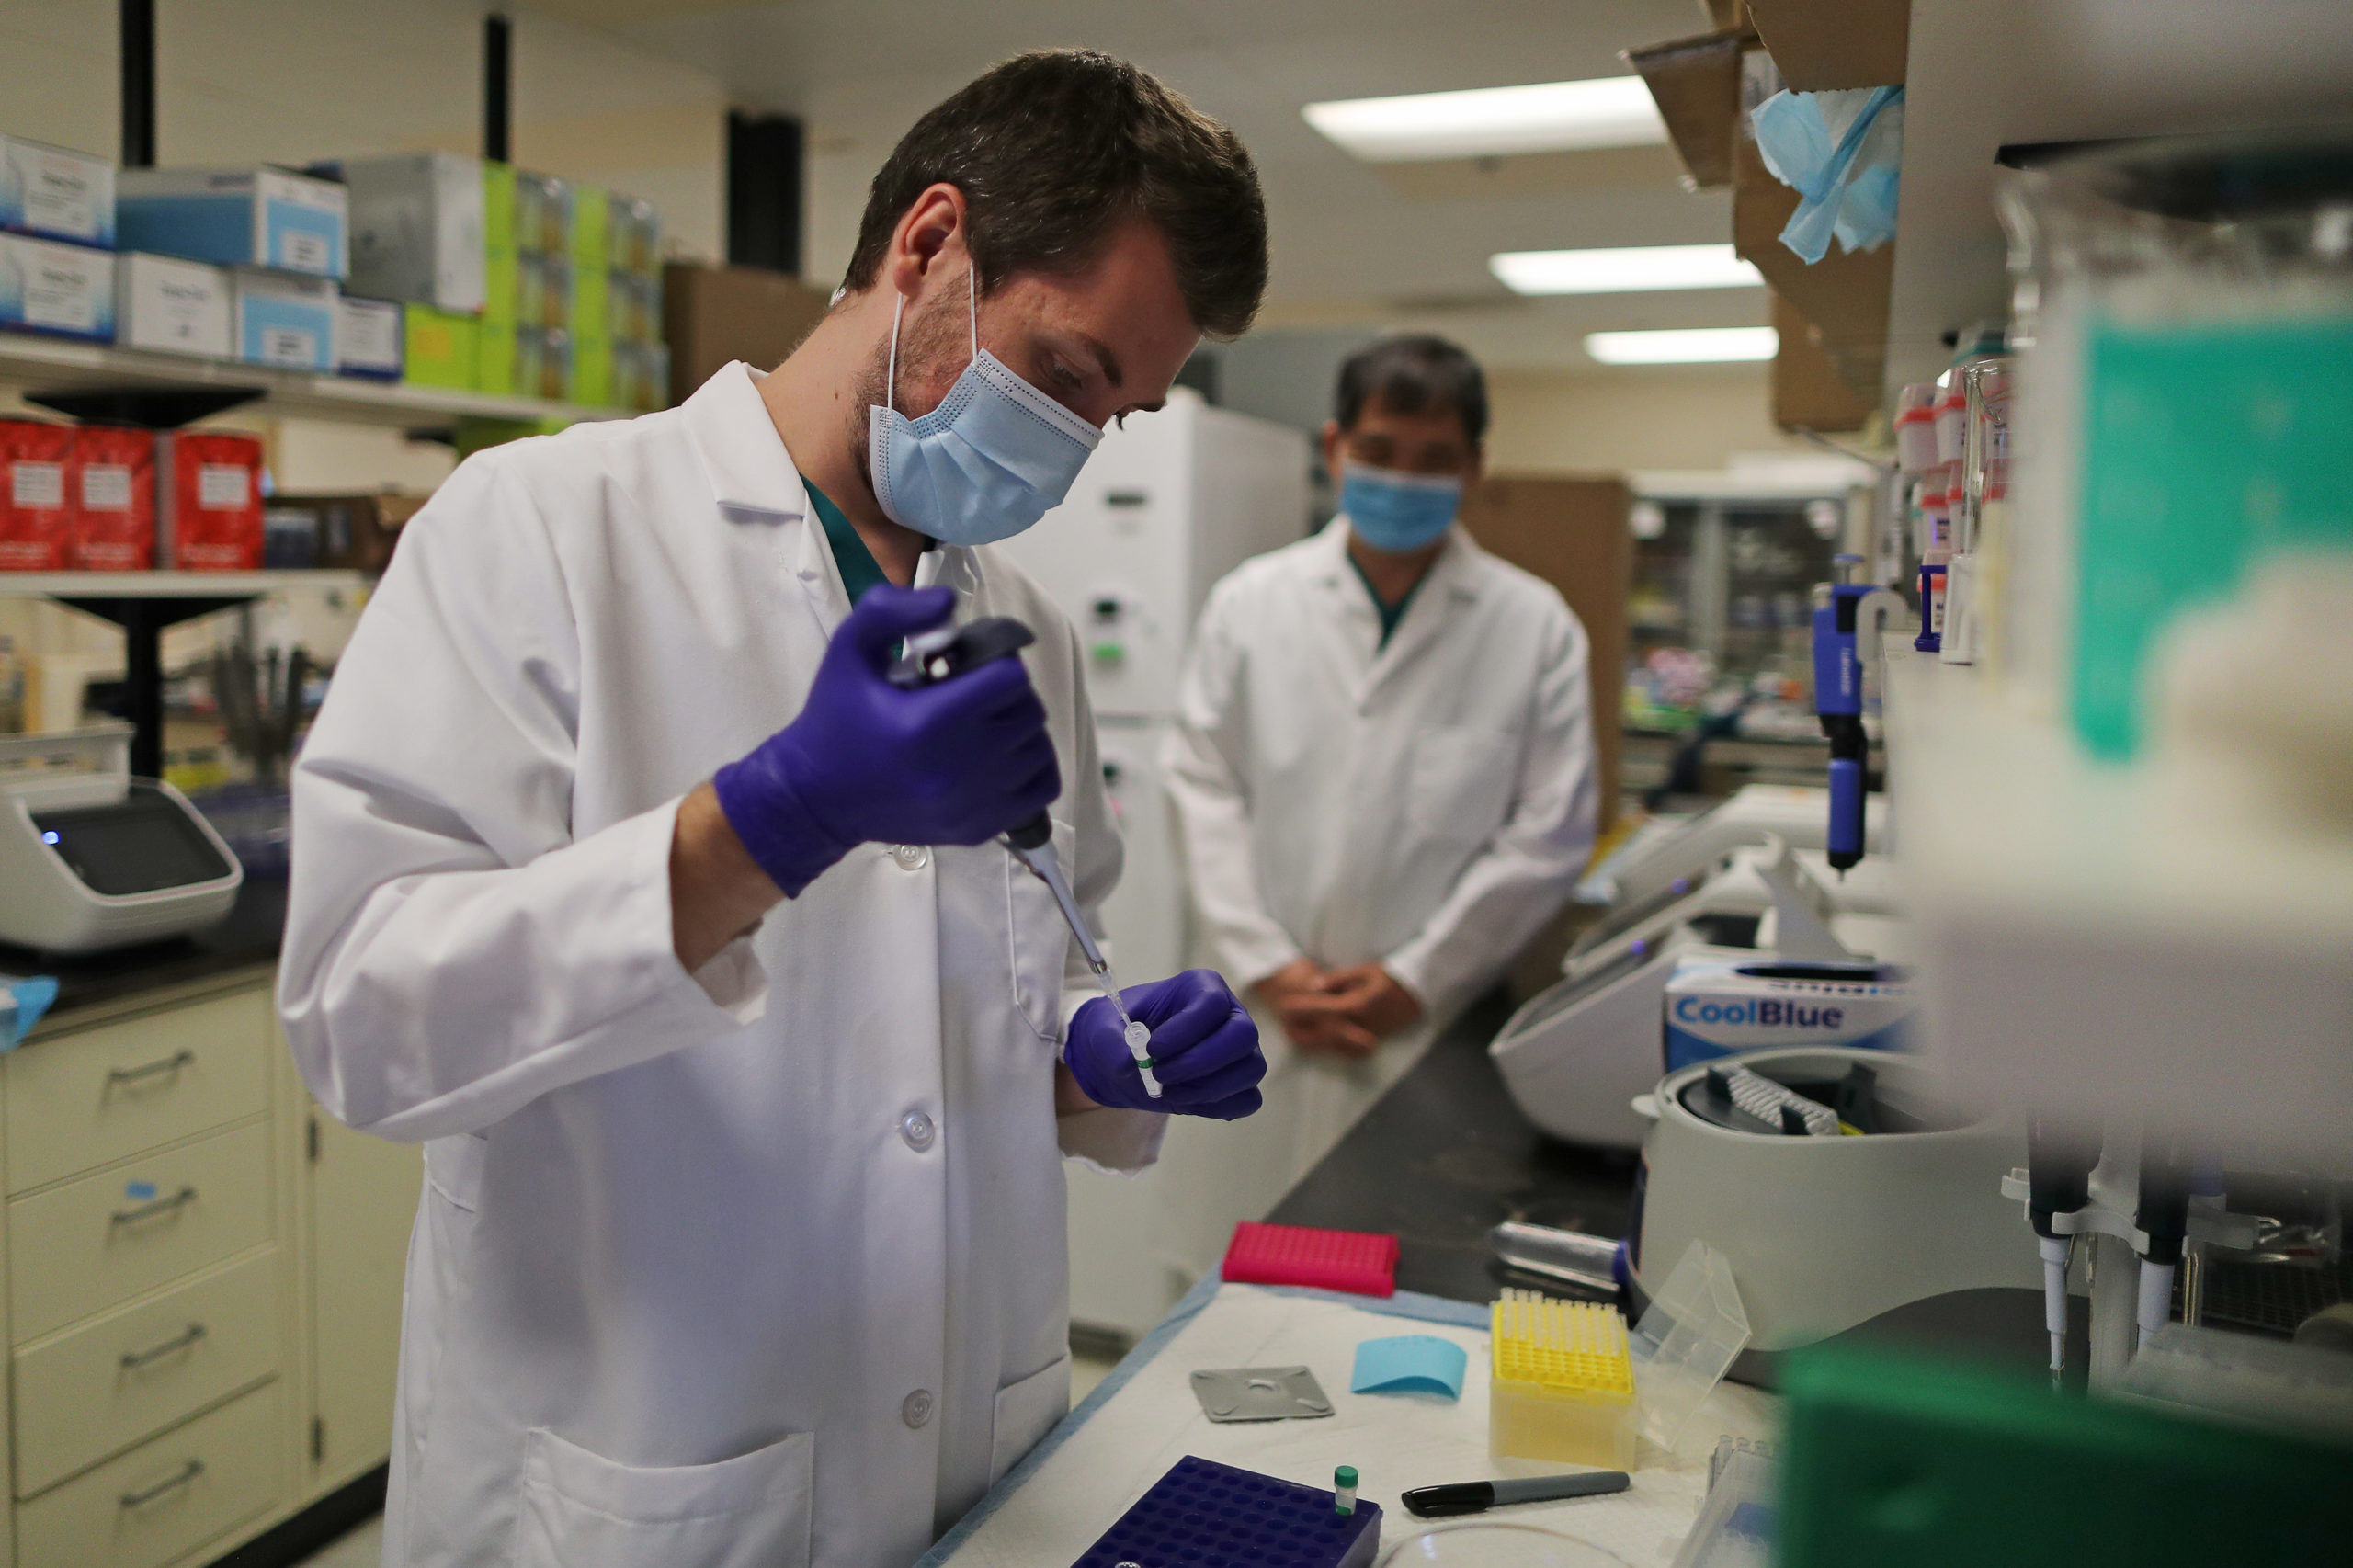 Lab Technician Carter Tavaglione prepares a solution that will be used to process coronavirus test samples at Advagenix, a molecular diagnostics laboratory, on August 05, 2020 in Rockville, Maryland. An advanced genetics testing company, Advagenix has a contract with Montgomery County, Maryland, to test about 1 million people for COVID-19 over the next year. The company is expanding by moving into additional lab space and doubling the size of its workforce to around 30 people to handle the increased work. (Photo by Chip Somodevilla/Getty Images)